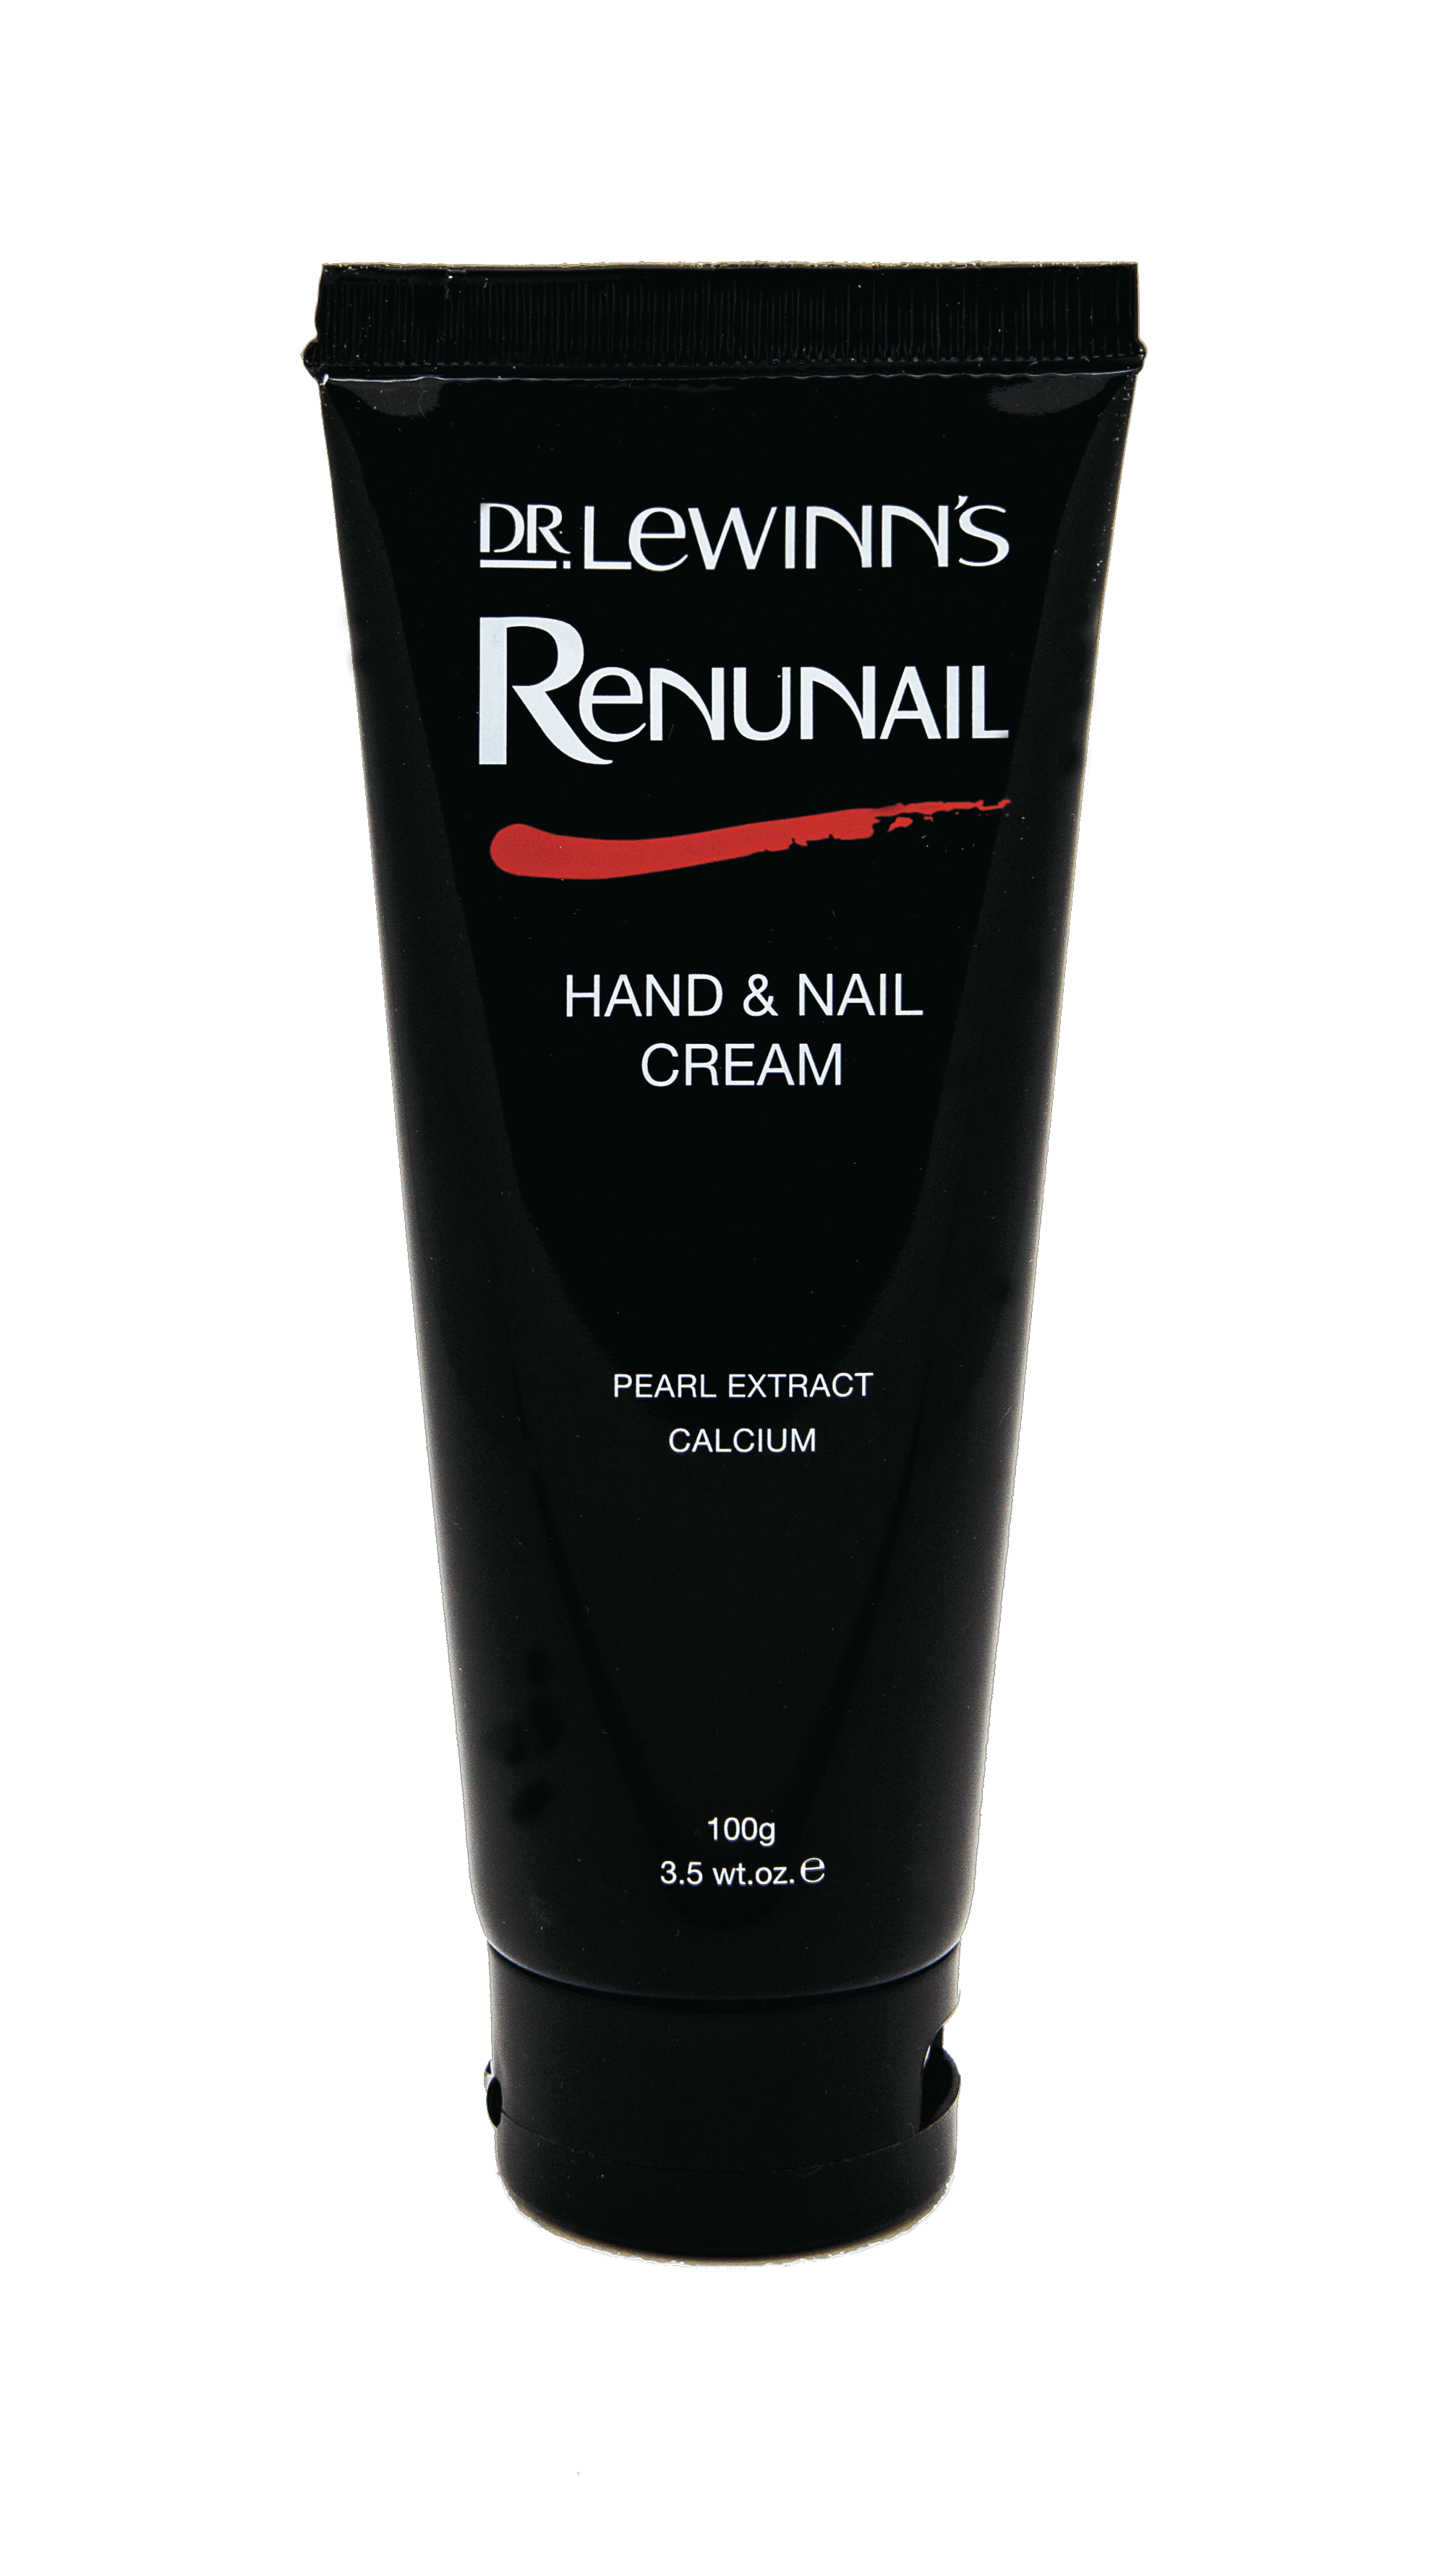 Image showing tube of Renunail Hand and Nail Cream